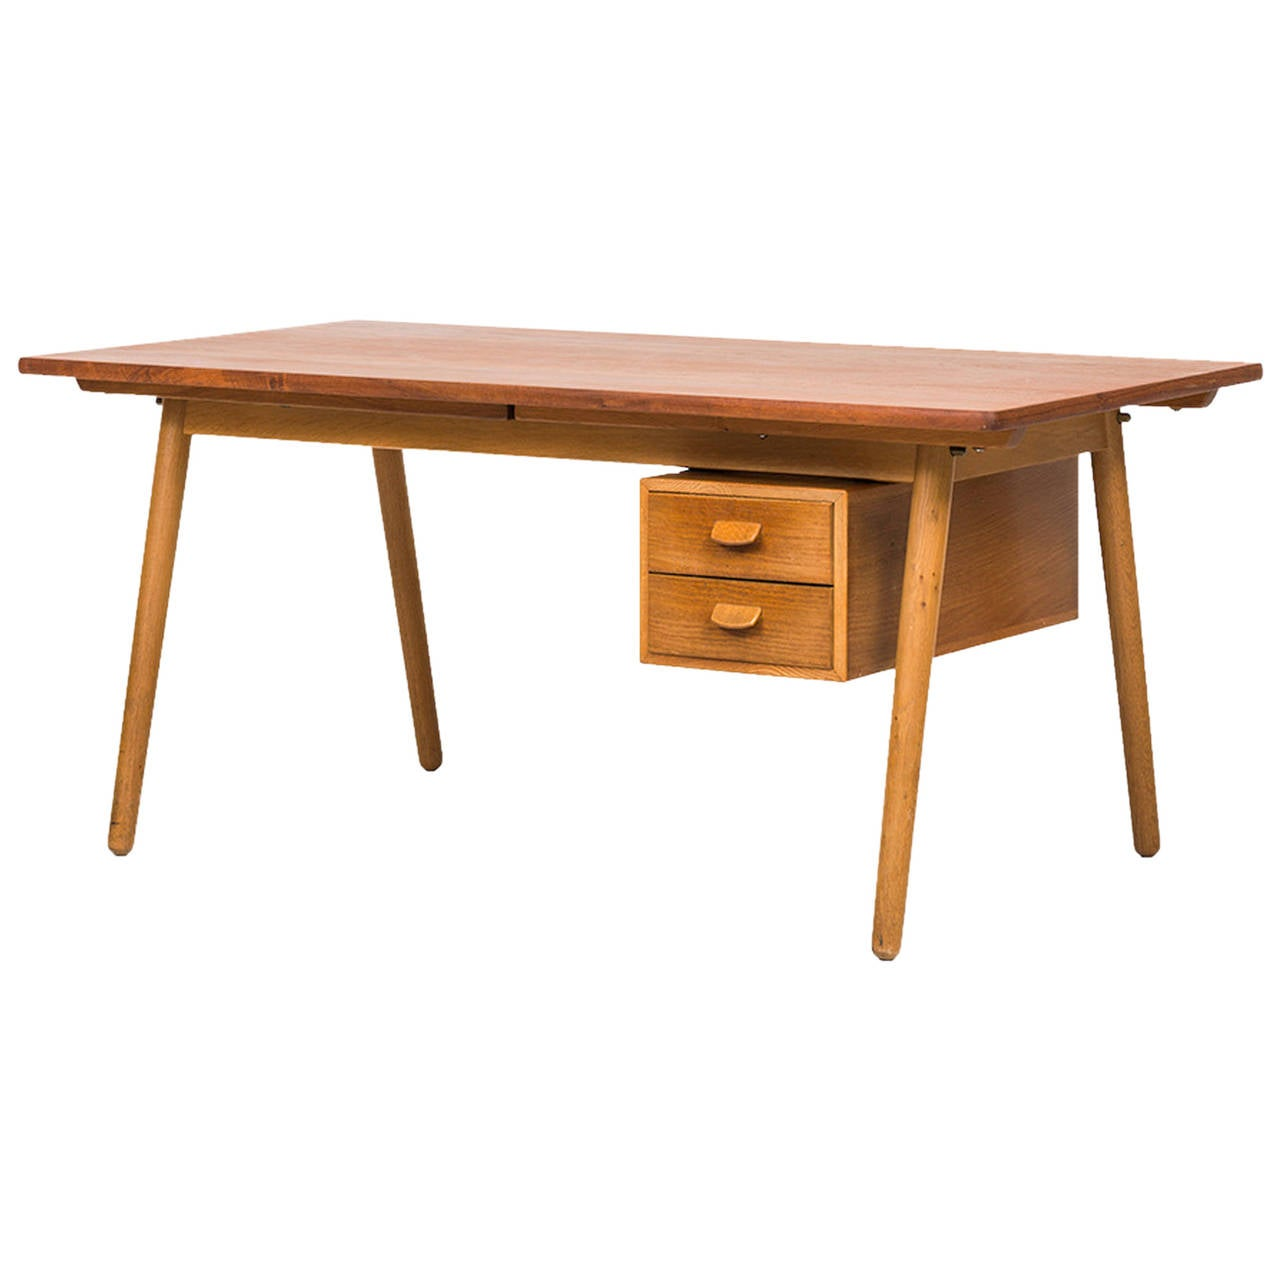 Poul Volther Desk/Dining Table by FDB Møbler in Denmark